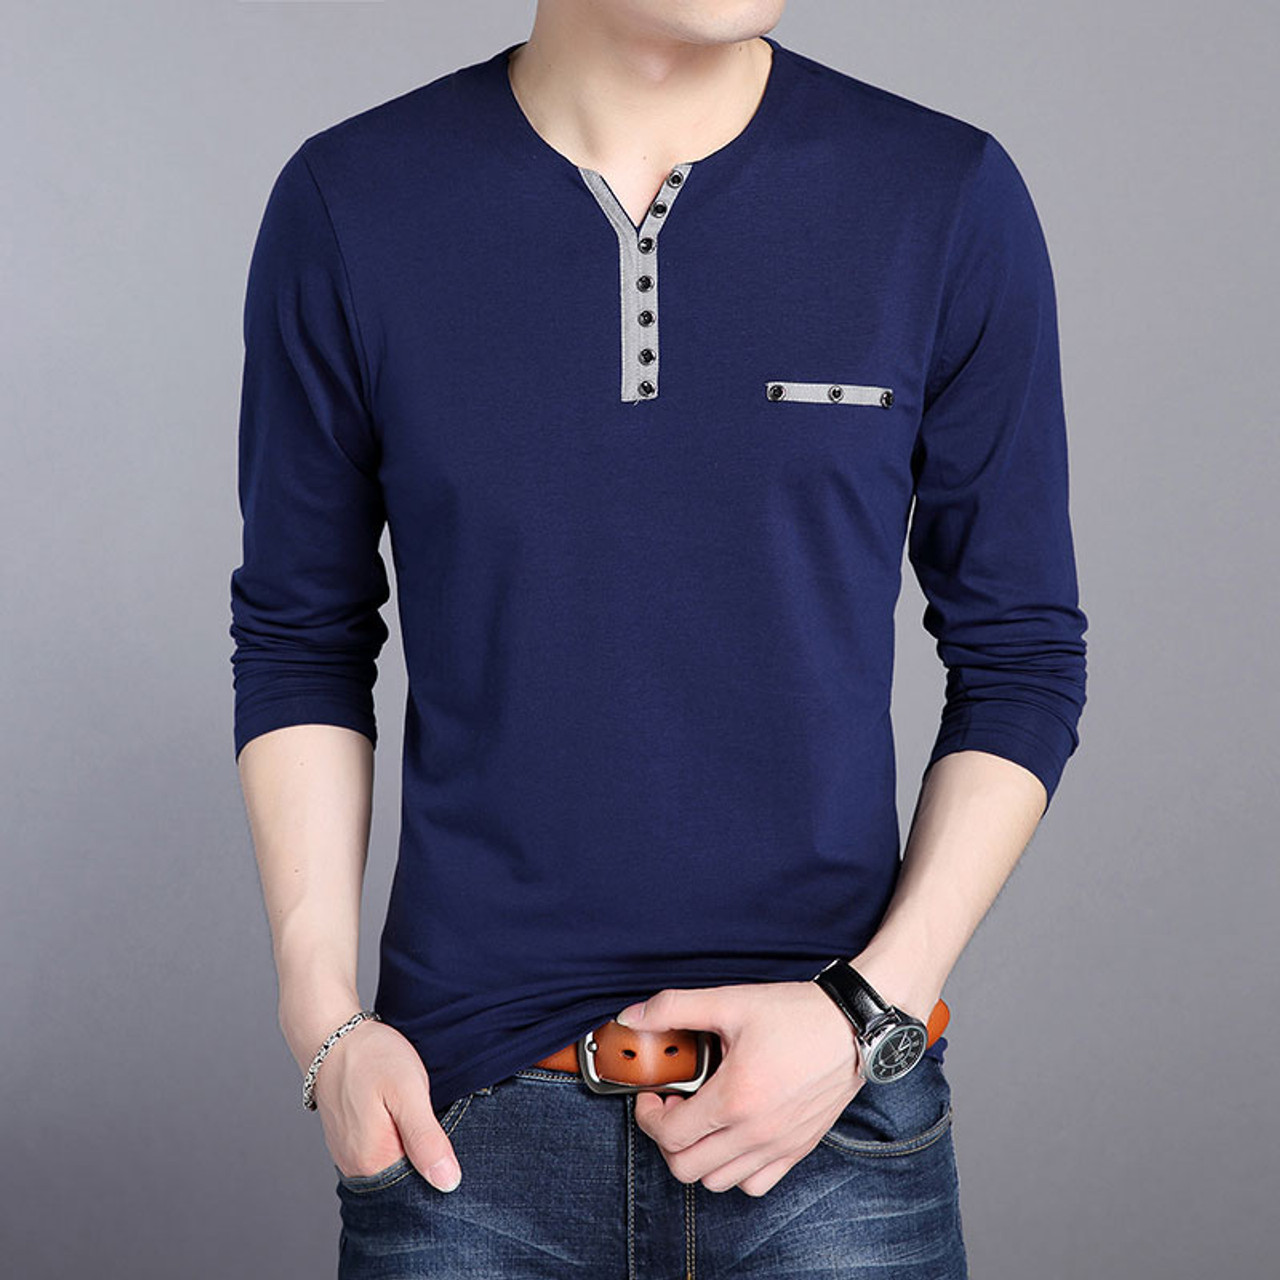 200d417f4fc ... 2018 New Fashion Brand V Neck Tops Solid Color T Shirt Men Button  Spring Autumn Tee ...